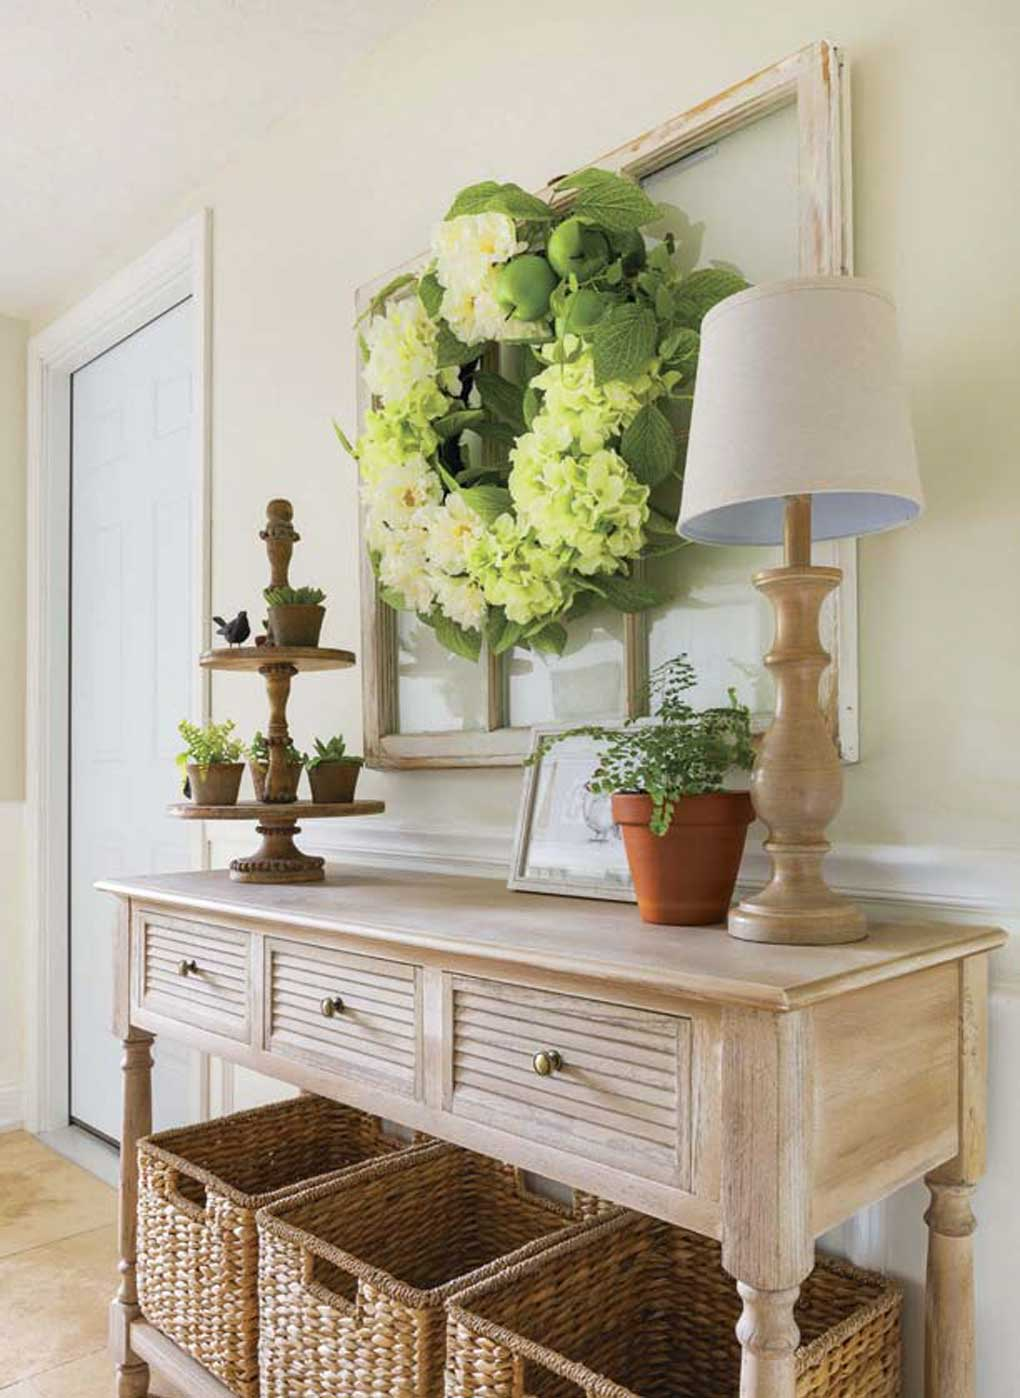 Entryway console table topped with plants and a lamp with three woven baskets underneath for storage as people enter the home and need to leave belongings.